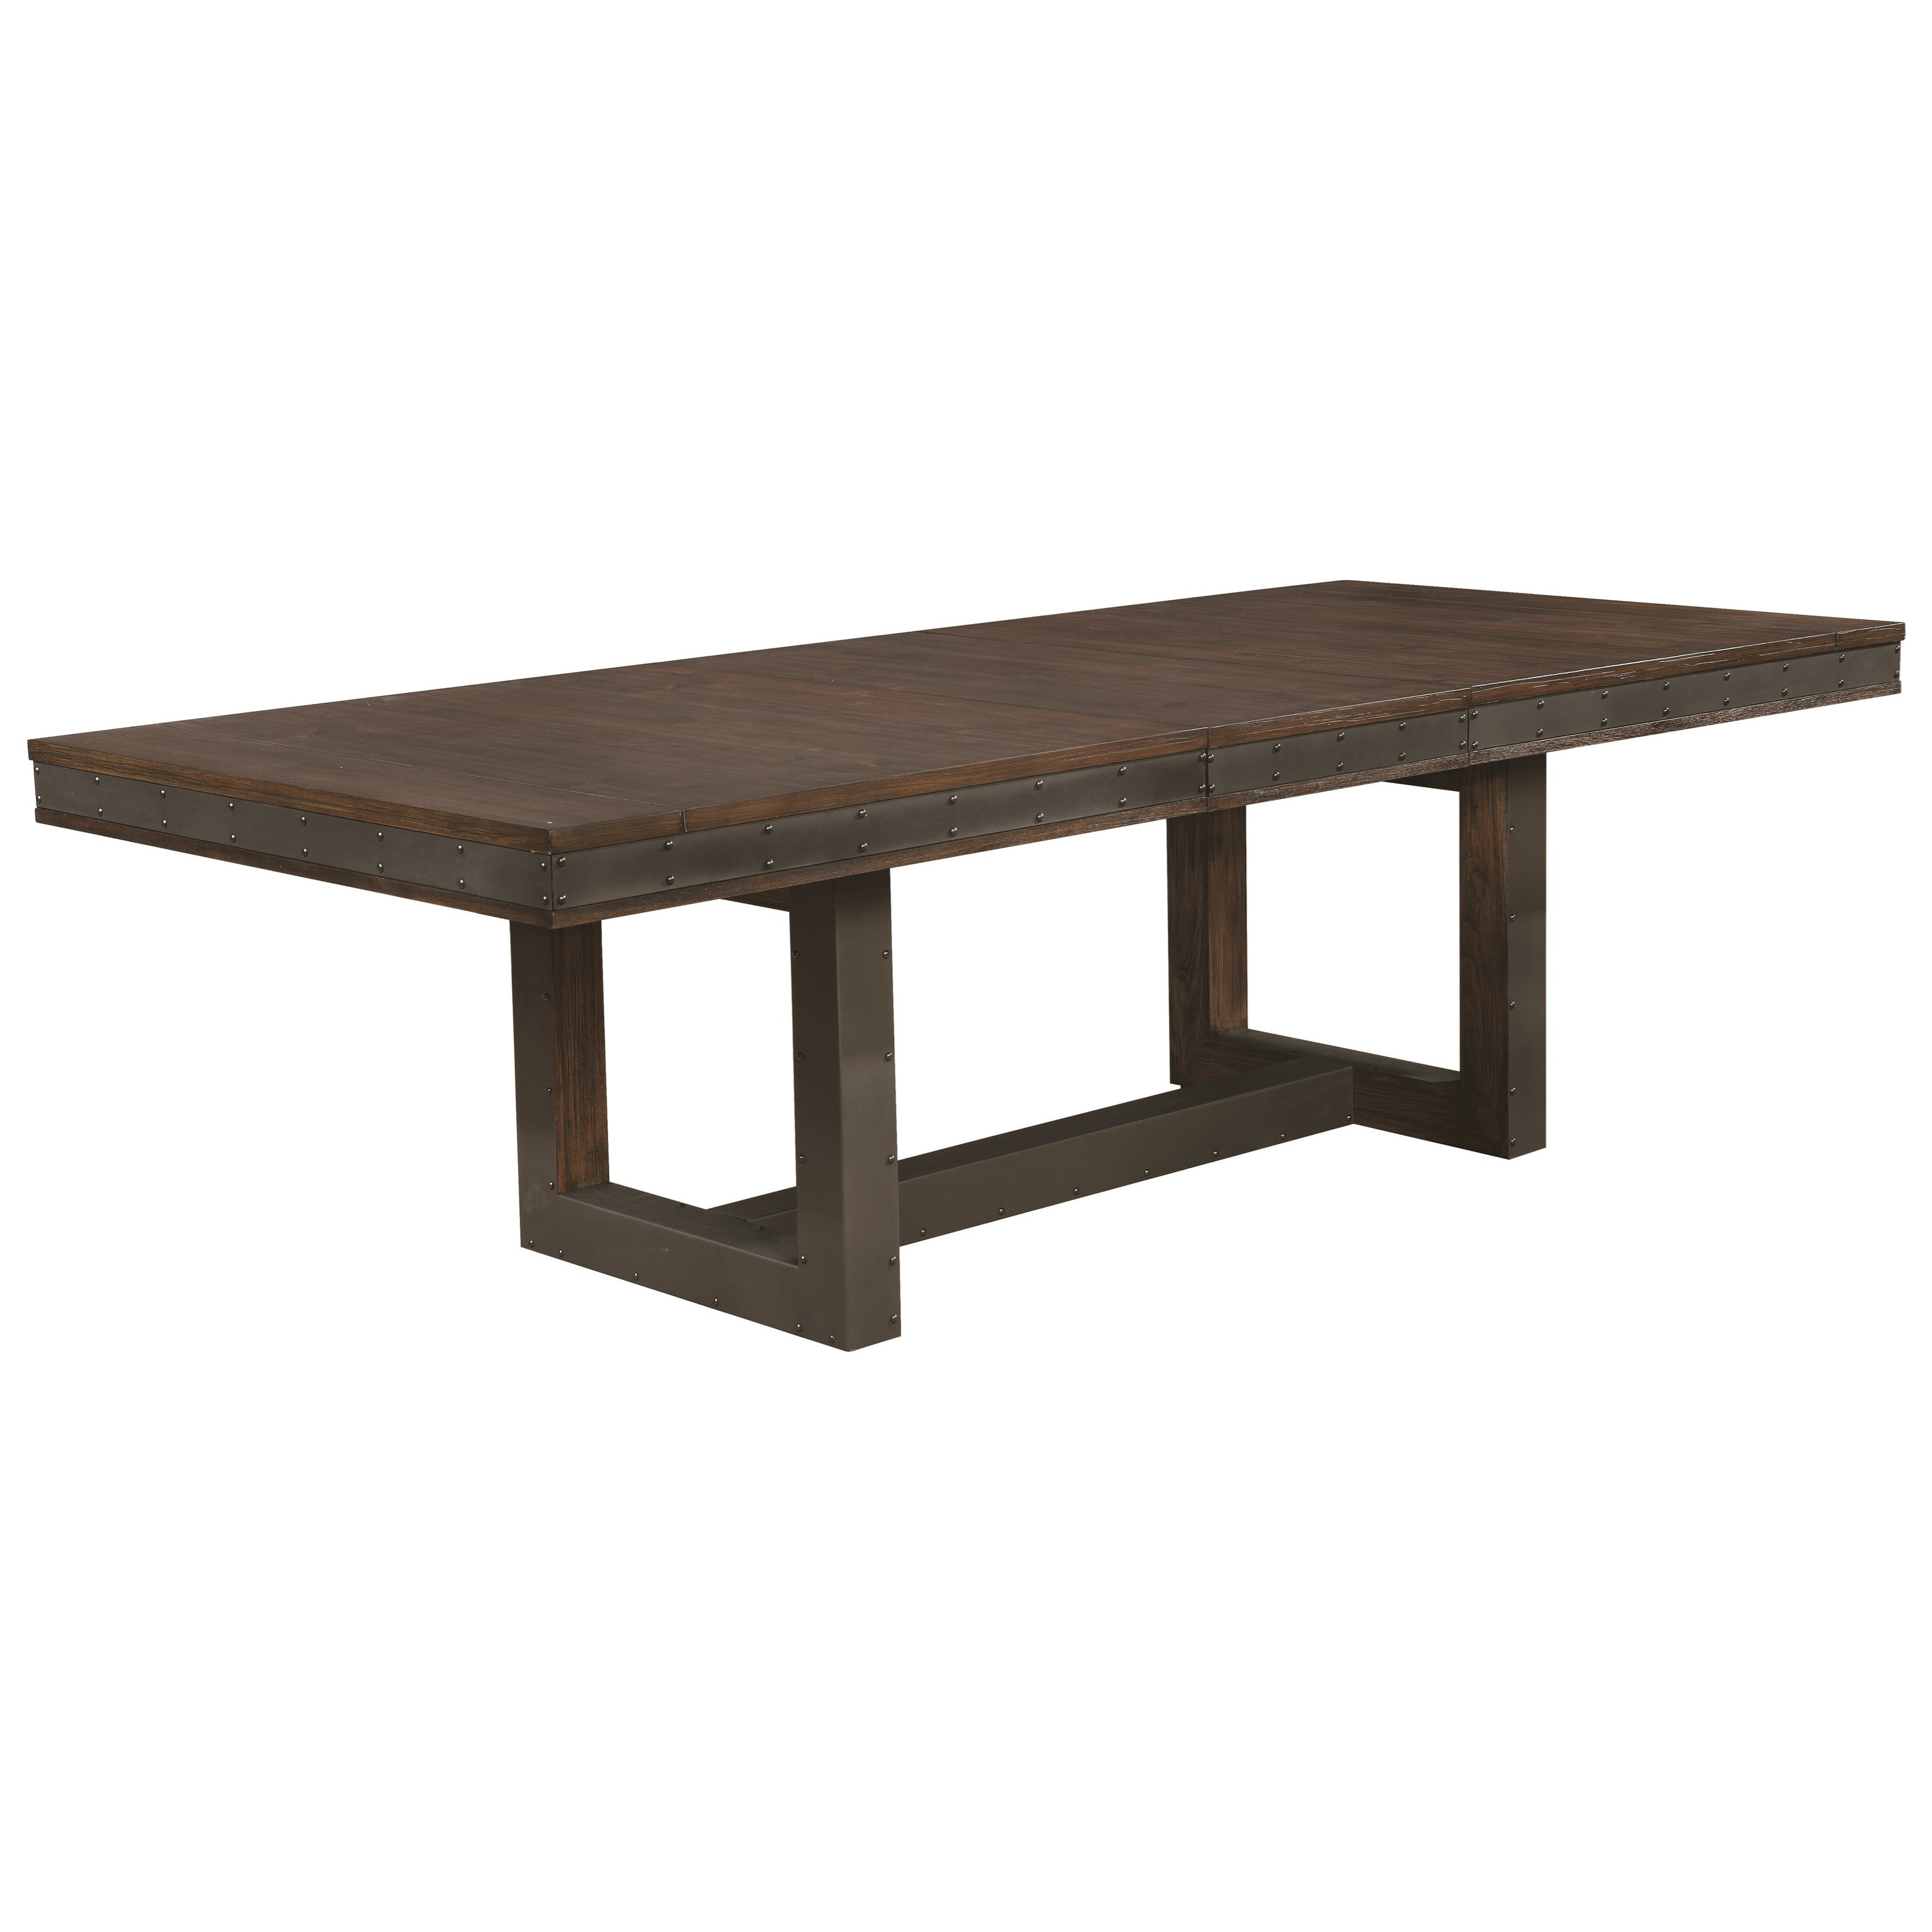 Scott Living Atwater Dining Table - Item Number: 107721